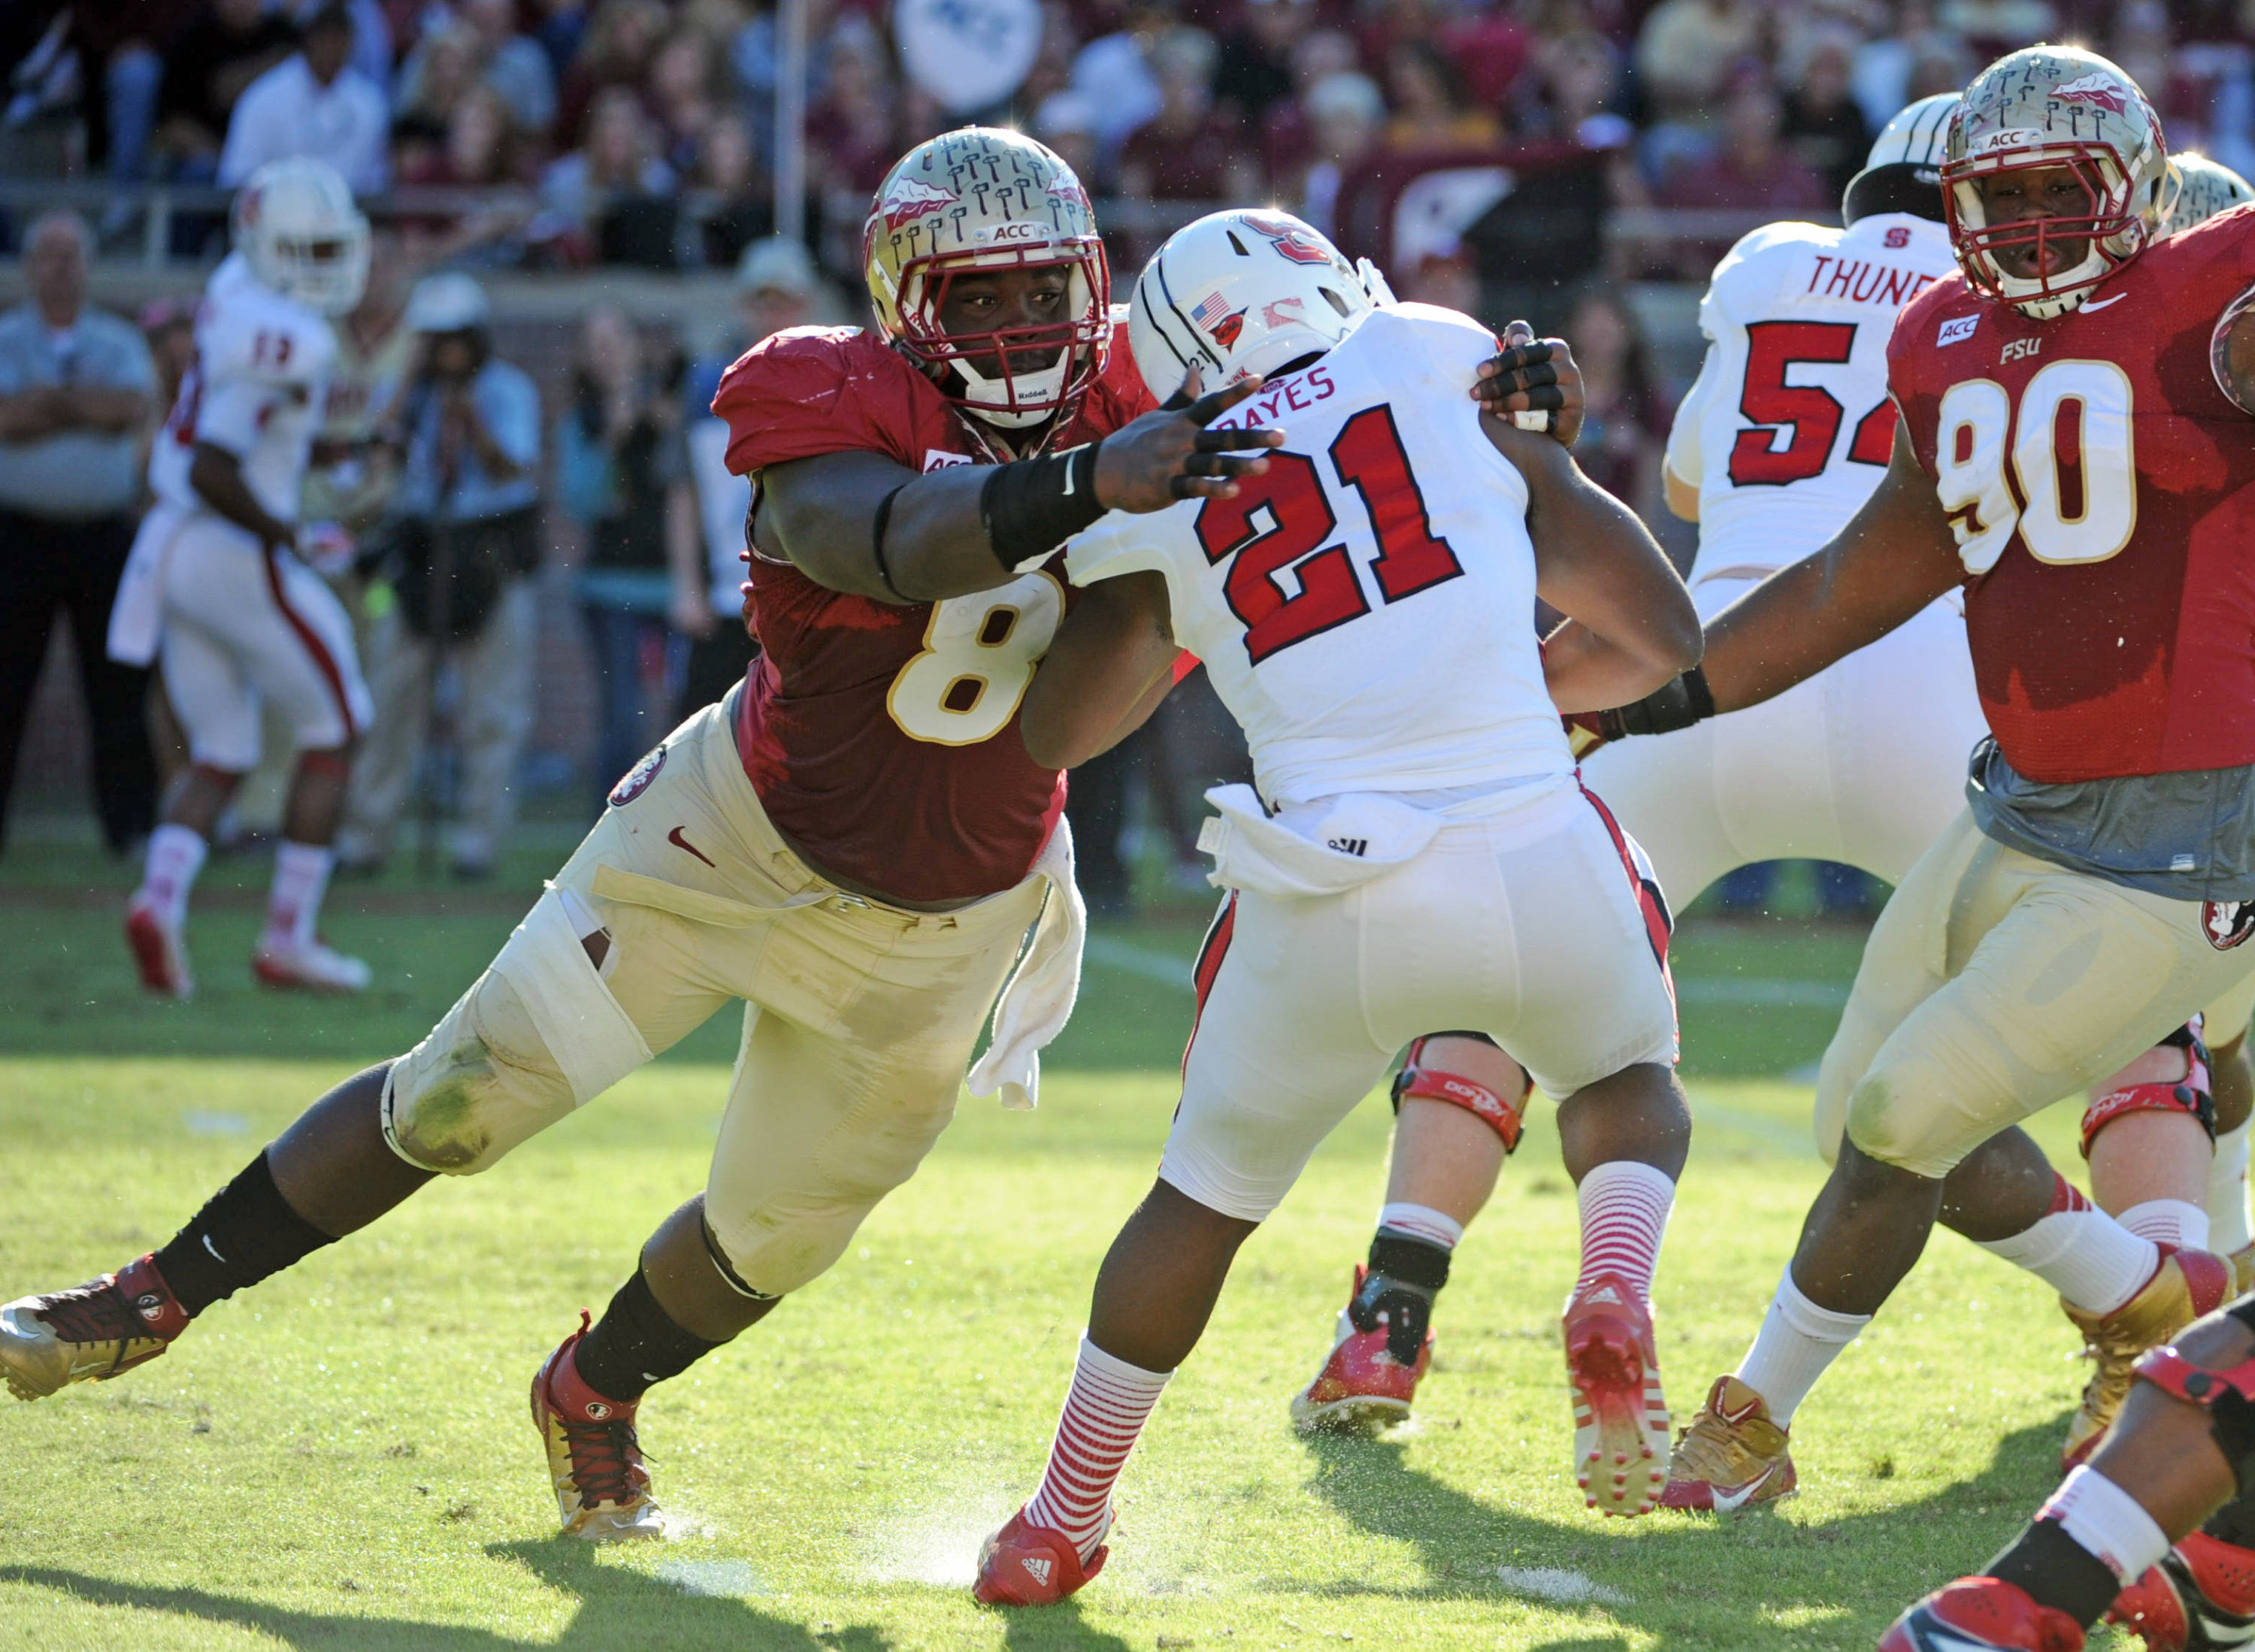 Timmy Jernigan (8) tackles North Carolina State Wolfpack running back Matt Dayes (21). Mandatory Credit: Melina Vastola-USA TODAY Sports